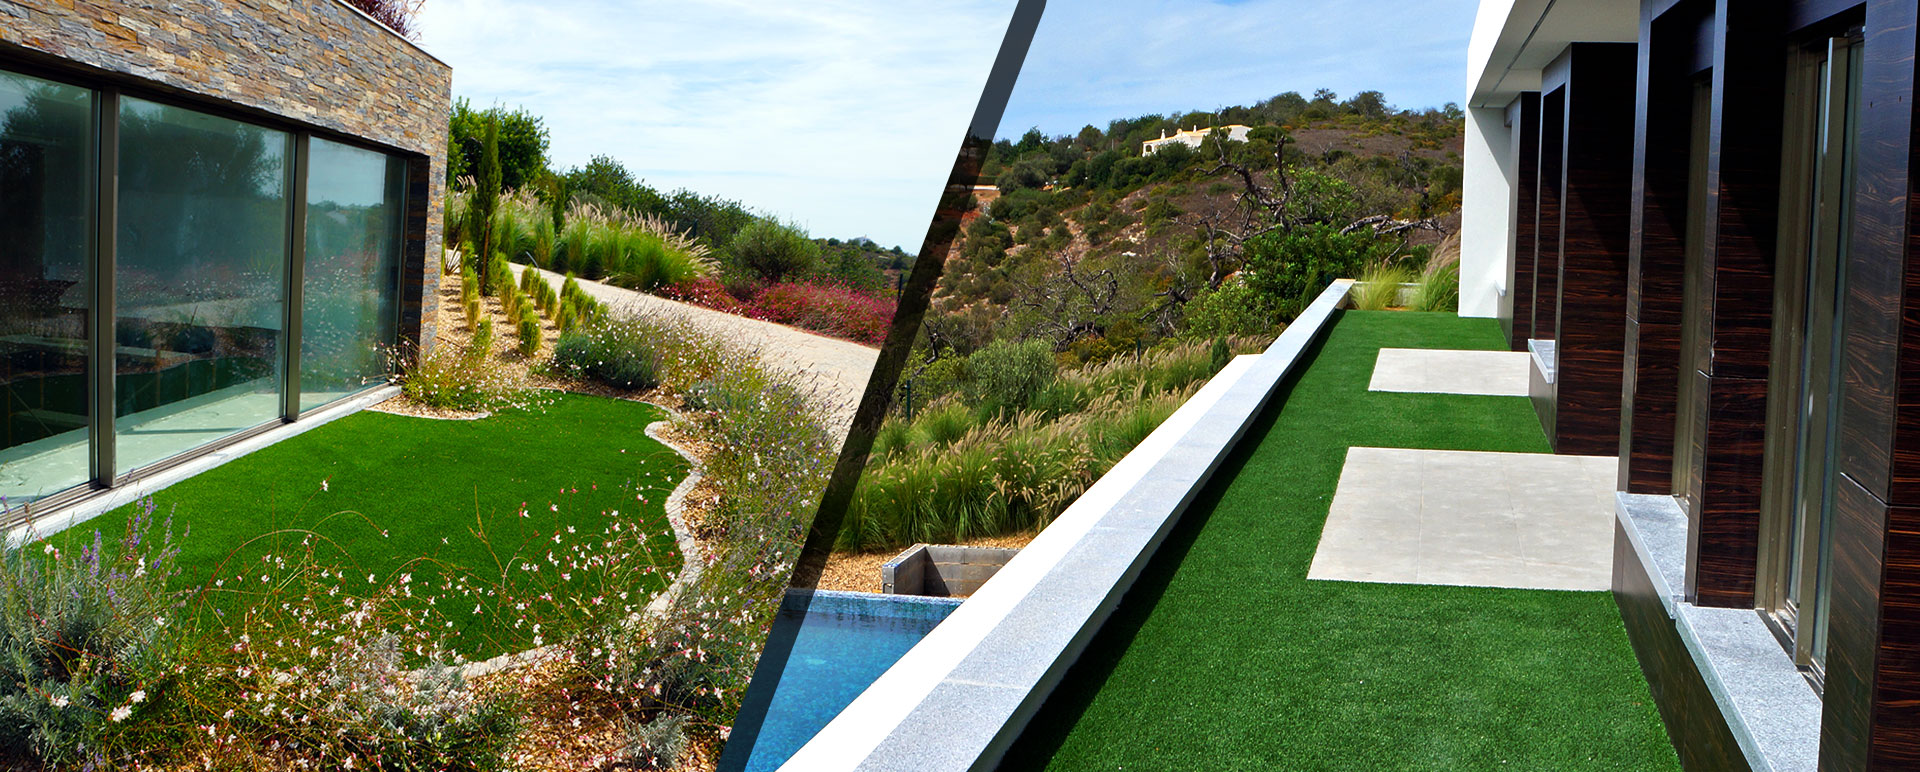 Artificial Grass - Landscaping Grass